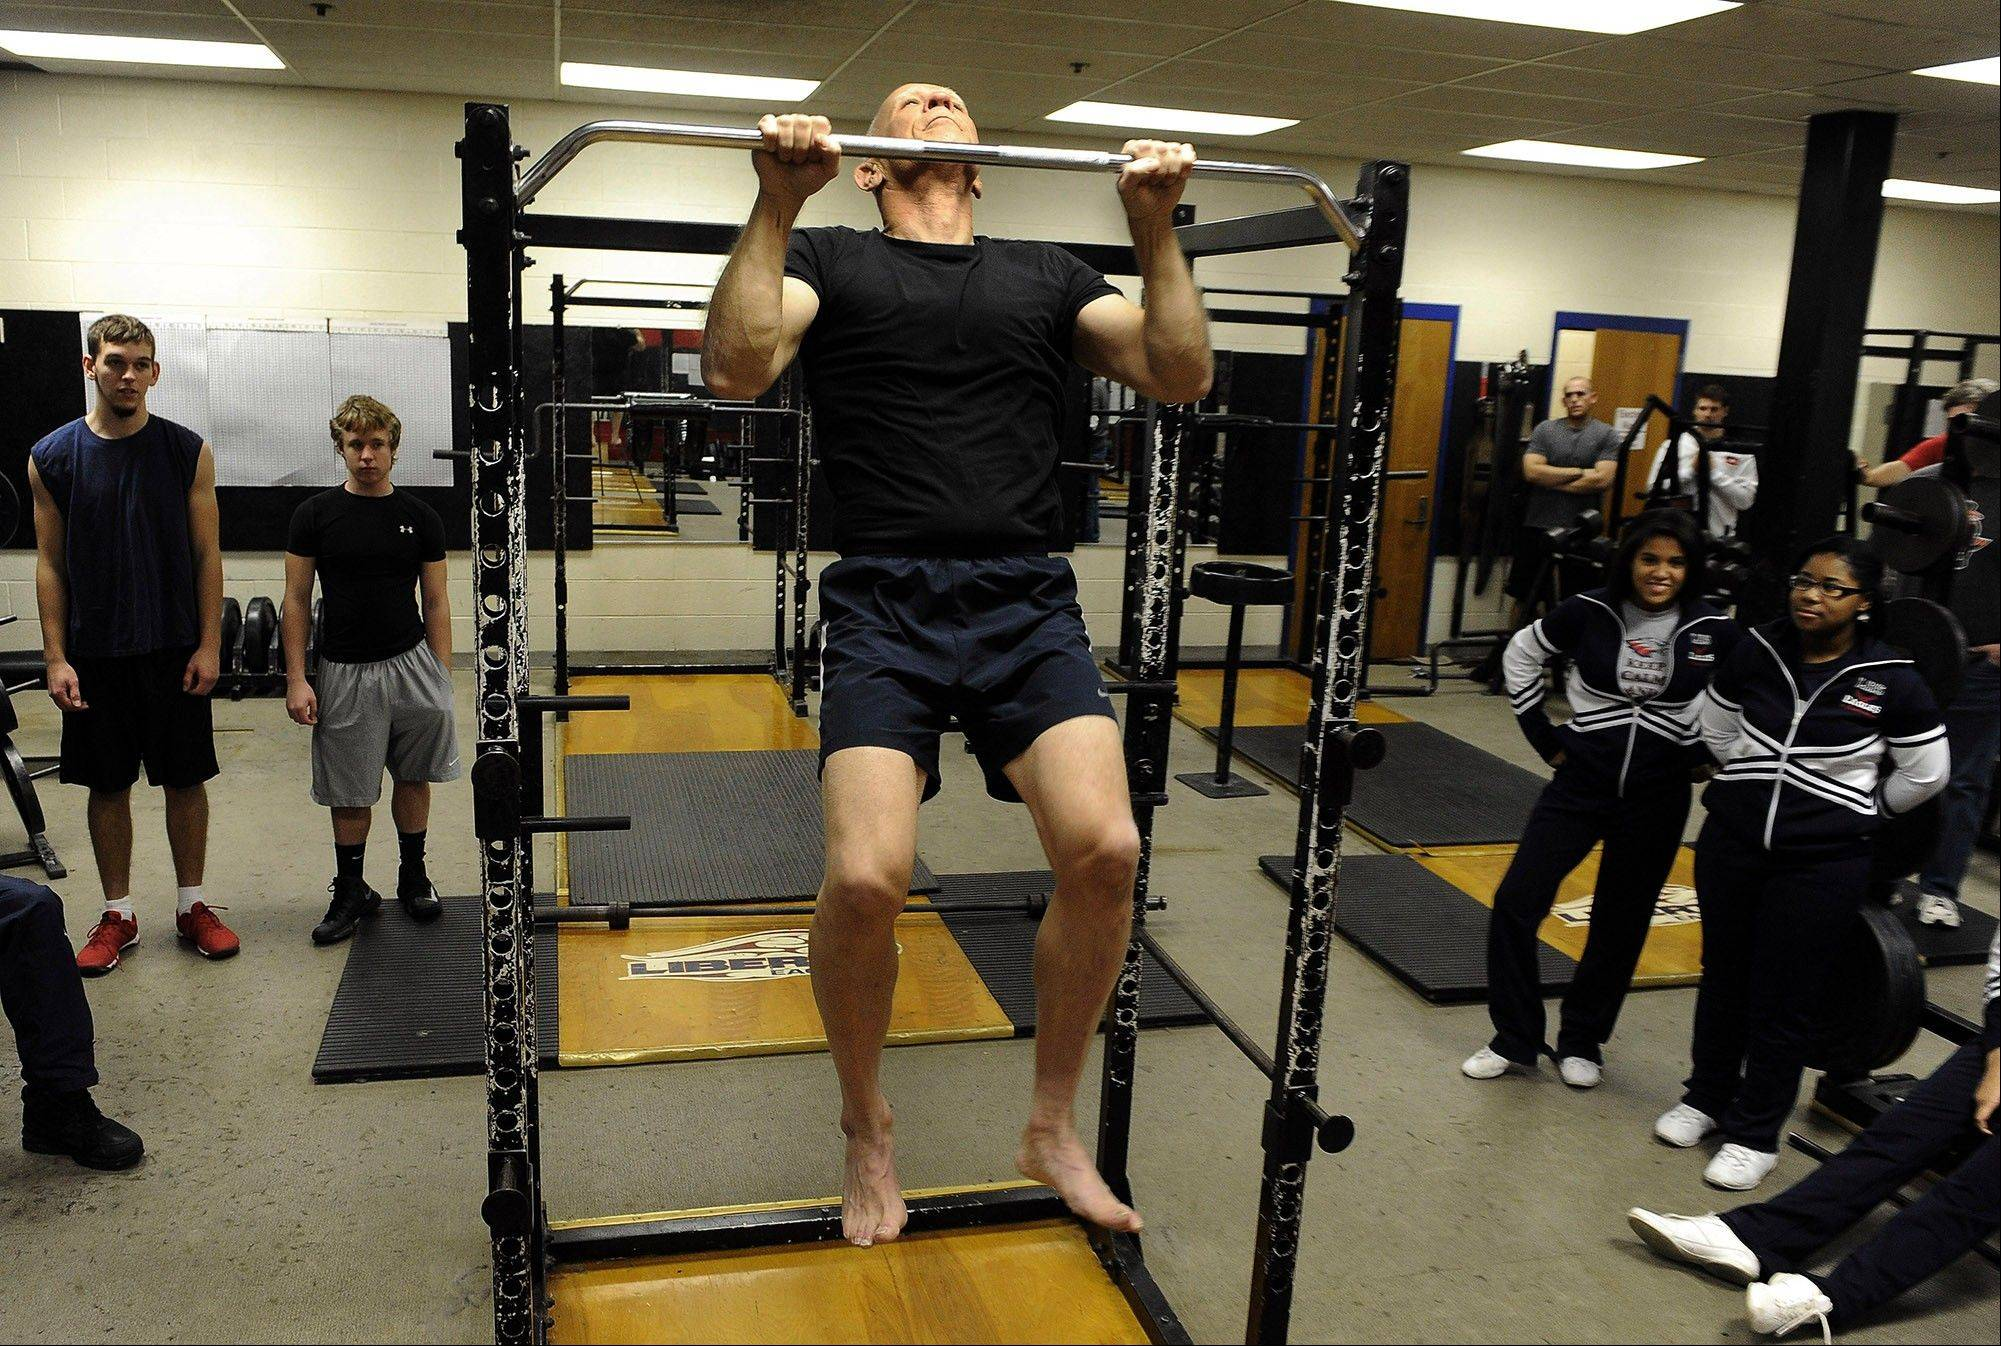 Photo by Richard A. Lipski/Washington Post  Dan Durante, 70, does 39 pullups in 53 seconds (hey, everybody has an off day now and then, right?) as part of a fundraiser for Liberty High School.